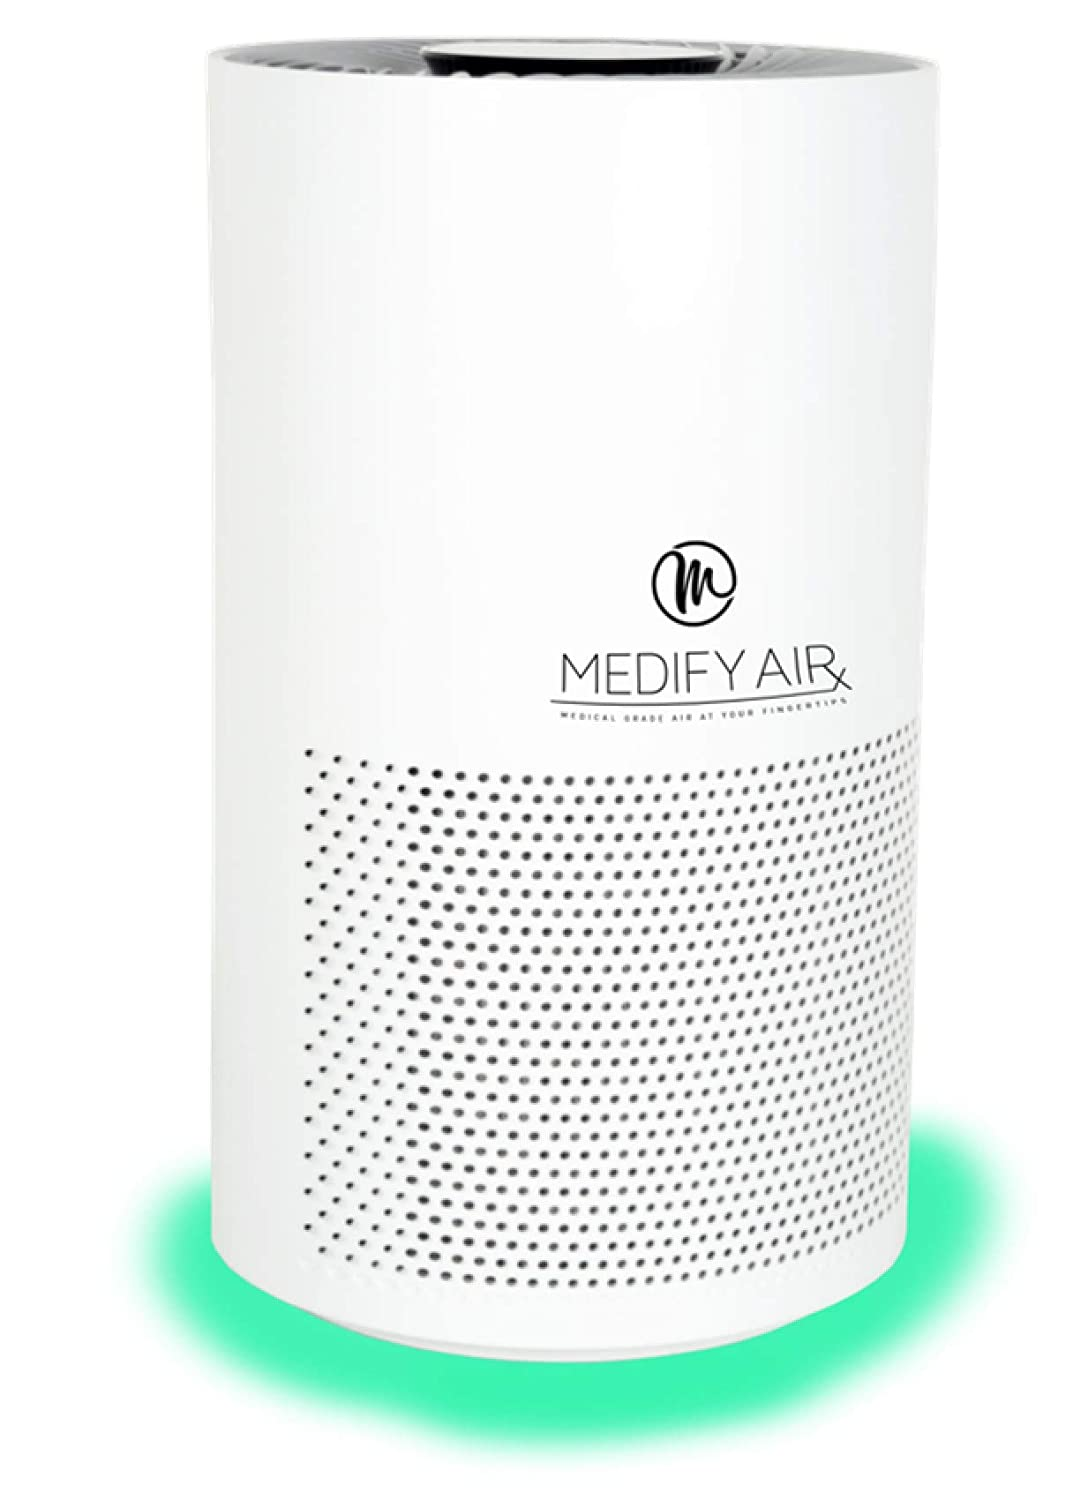 Medify MA-Smart Mobile App, Alexa Enabled Medical Grade H13 True HEPA Filtration Air Purifier for 500 sq ft 99.97 Particle Sensor with light indicator 3-in-1 Filter